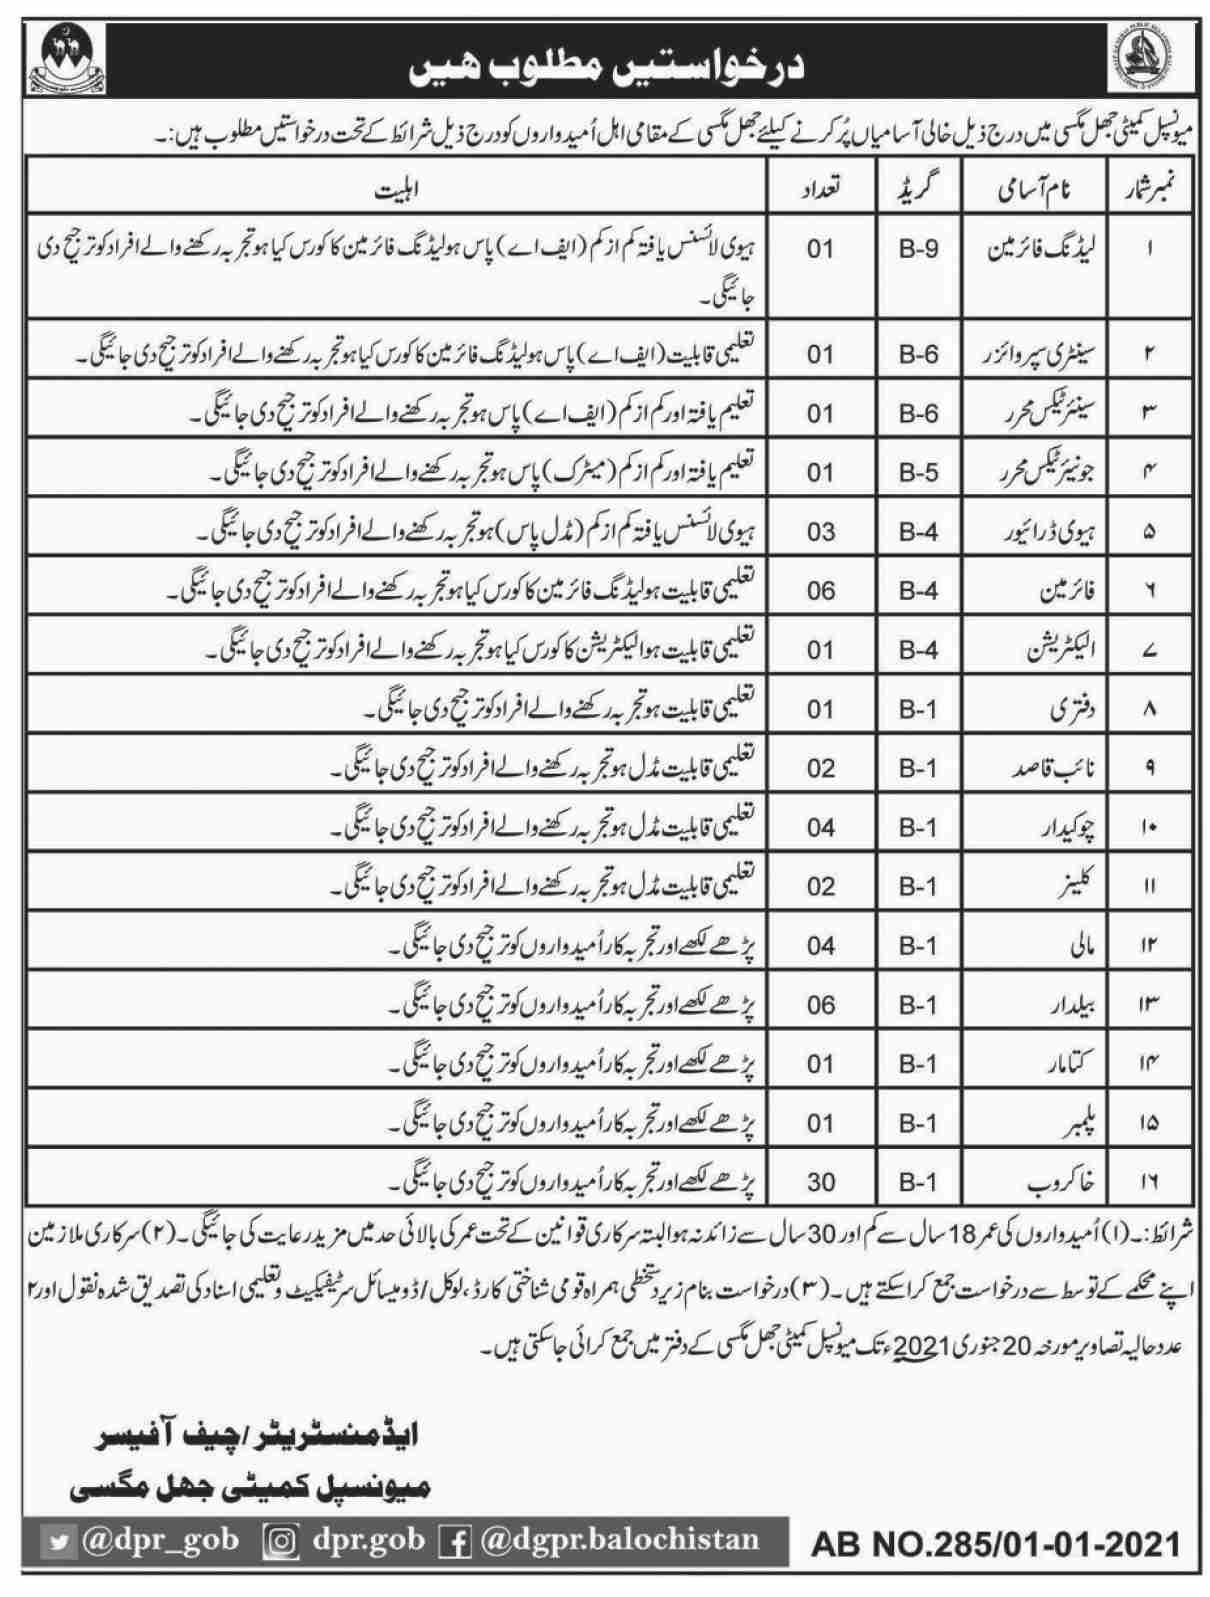 Municipal Committee Works 2021 - Jhal Magsi Works 2021 - Balochistan Government Affairs 2021 - Support Personnel Jobs in Pakistan 2021